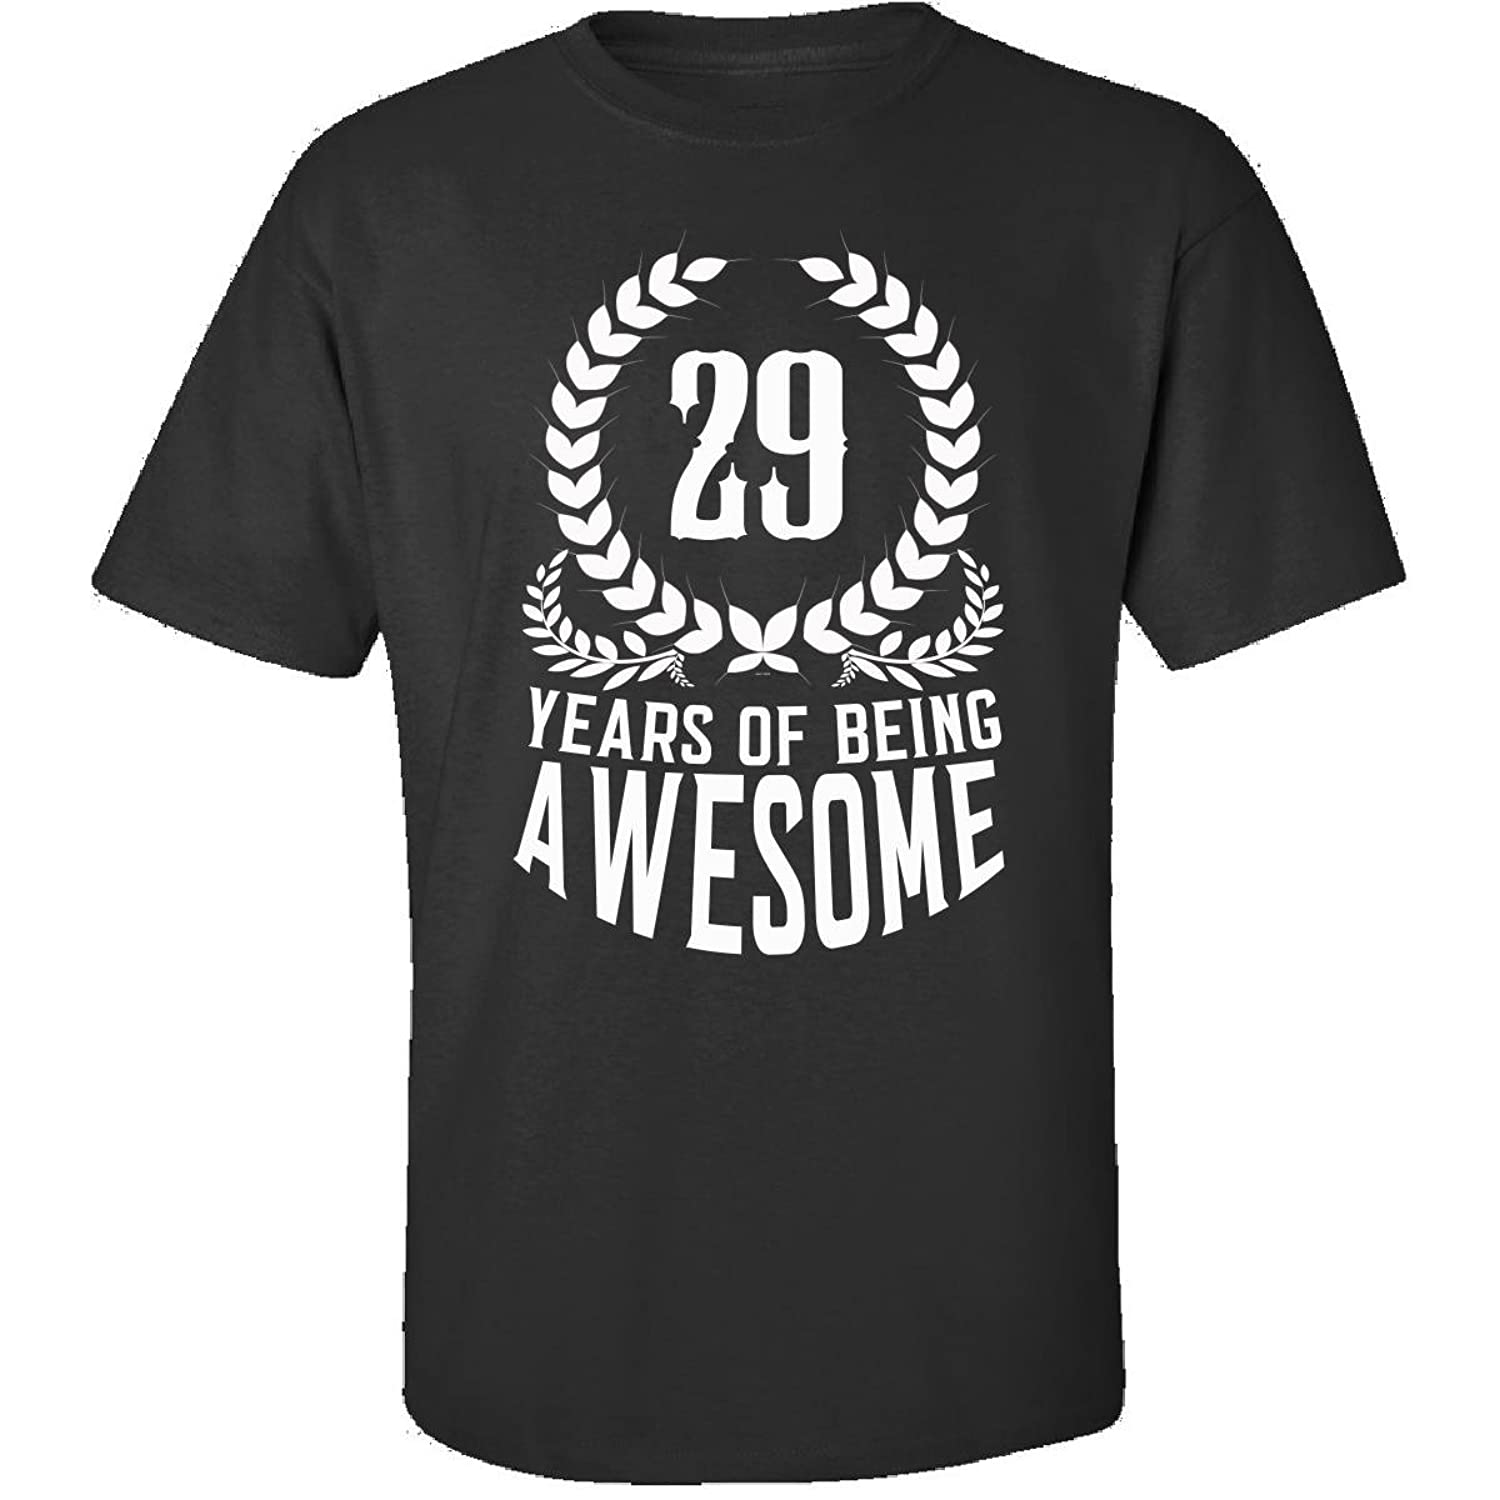 29th Birthday Gift For Men Woman 29 Years Of Being Awesome - Adult Shirt